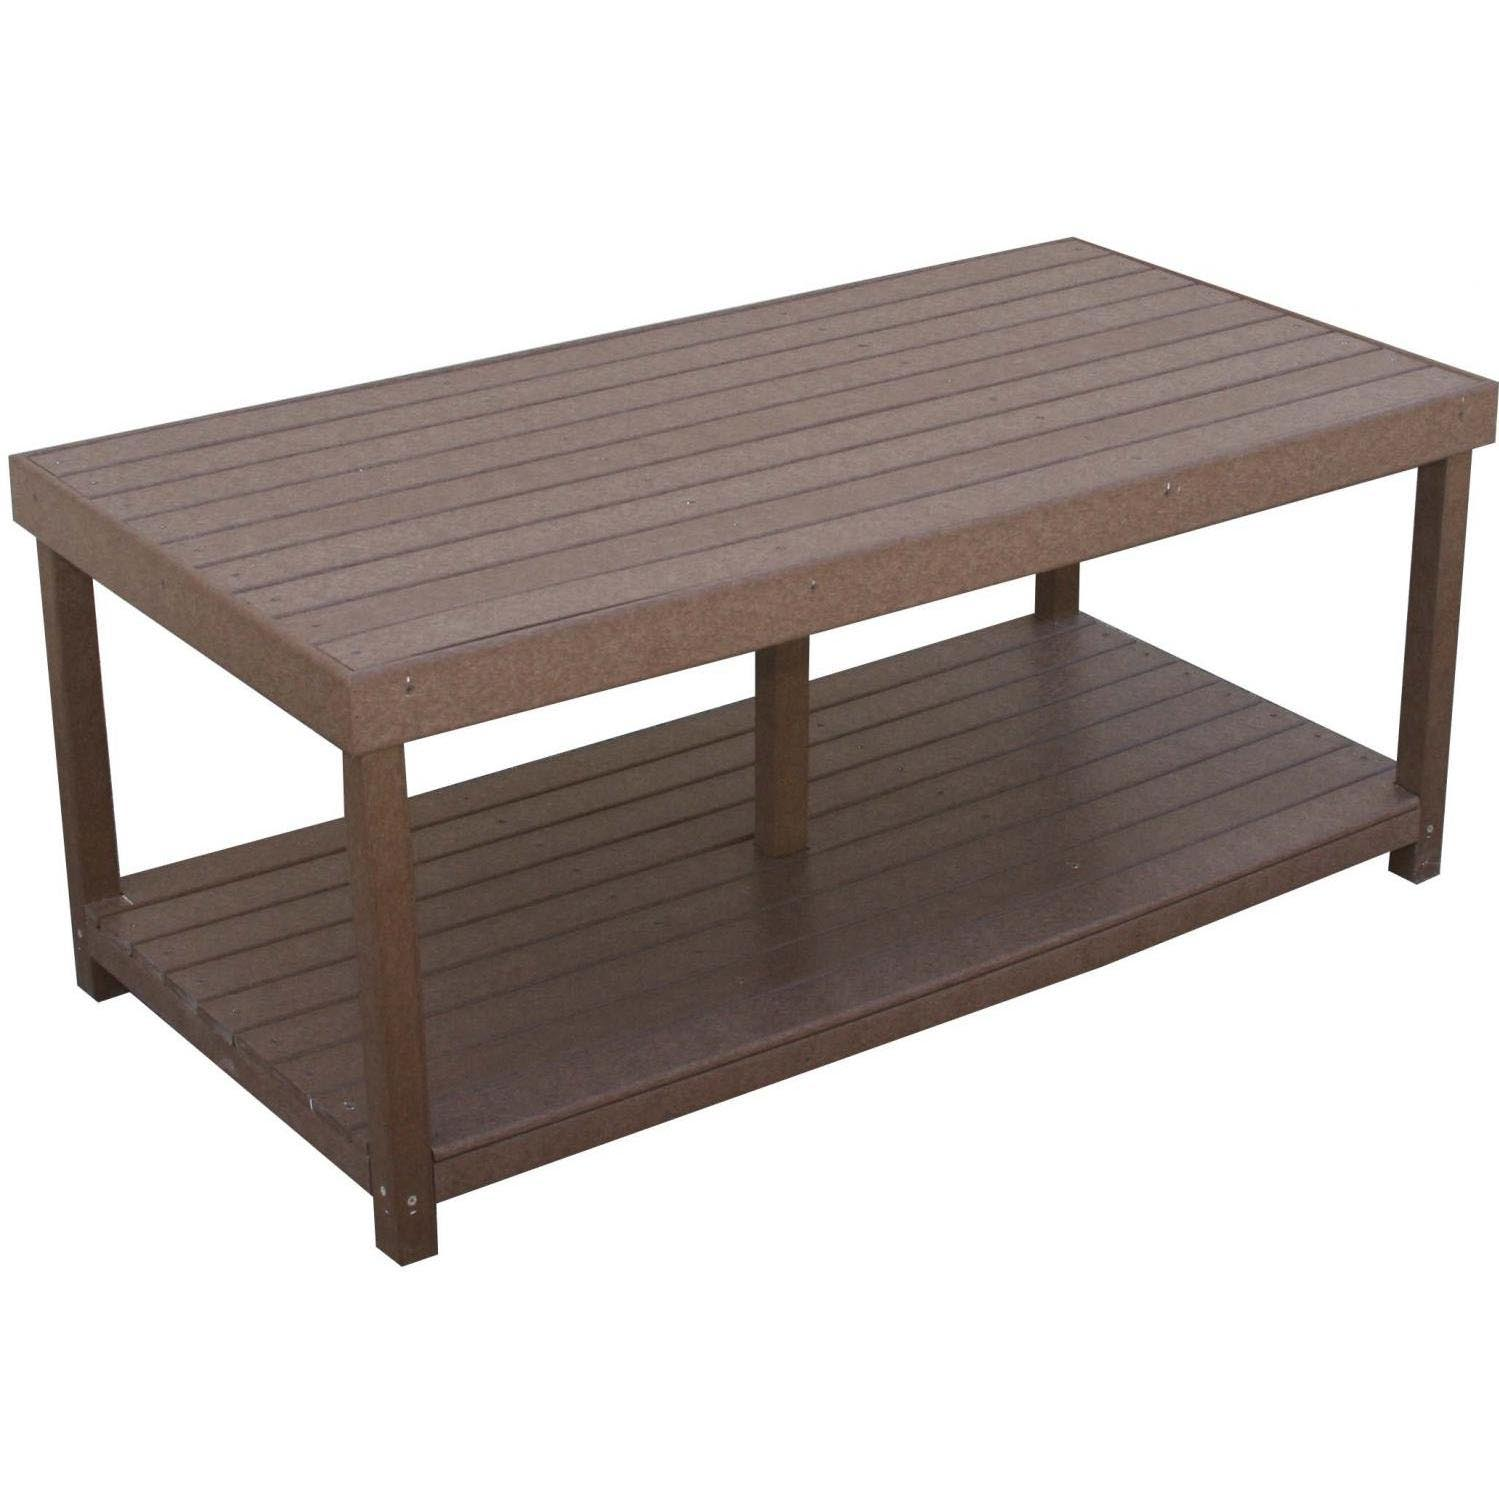 Plastic Patio Coffee Table Coffee Table Design Ideas